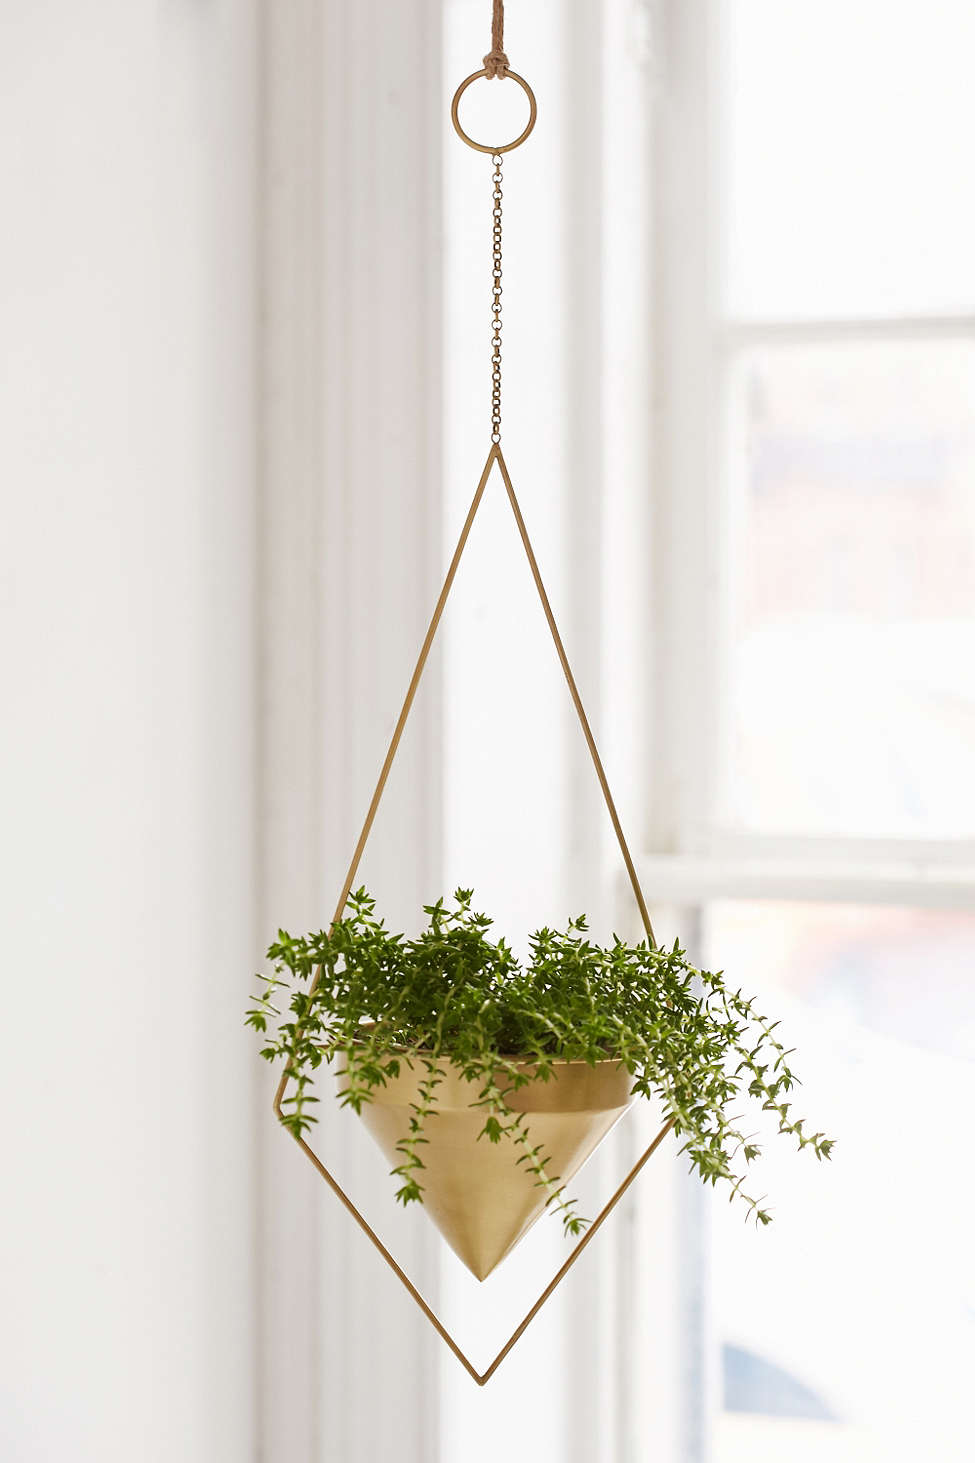 Deal of the Day: Whimsical Hanging Planter -- Just $30